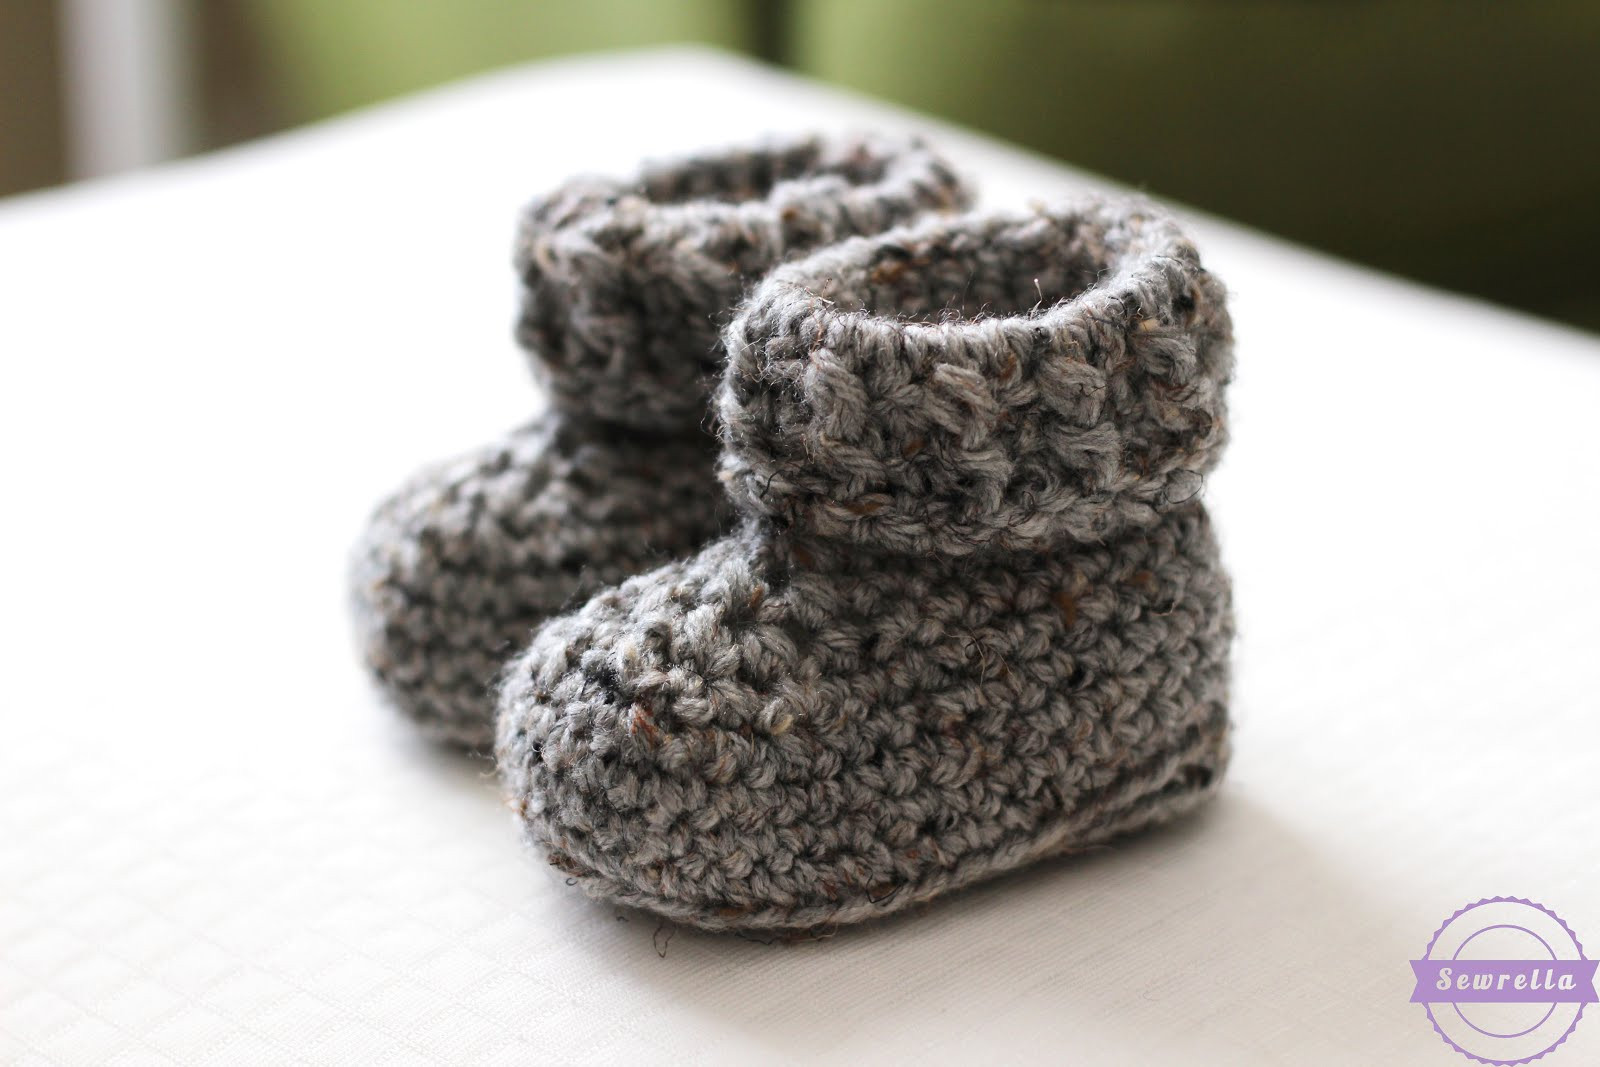 Best Of the Parker Crochet Baby Booties Sewrella Crochet Baby socks Of New Berry Baby Booties Knitting Pattern Easy Crochet Baby socks